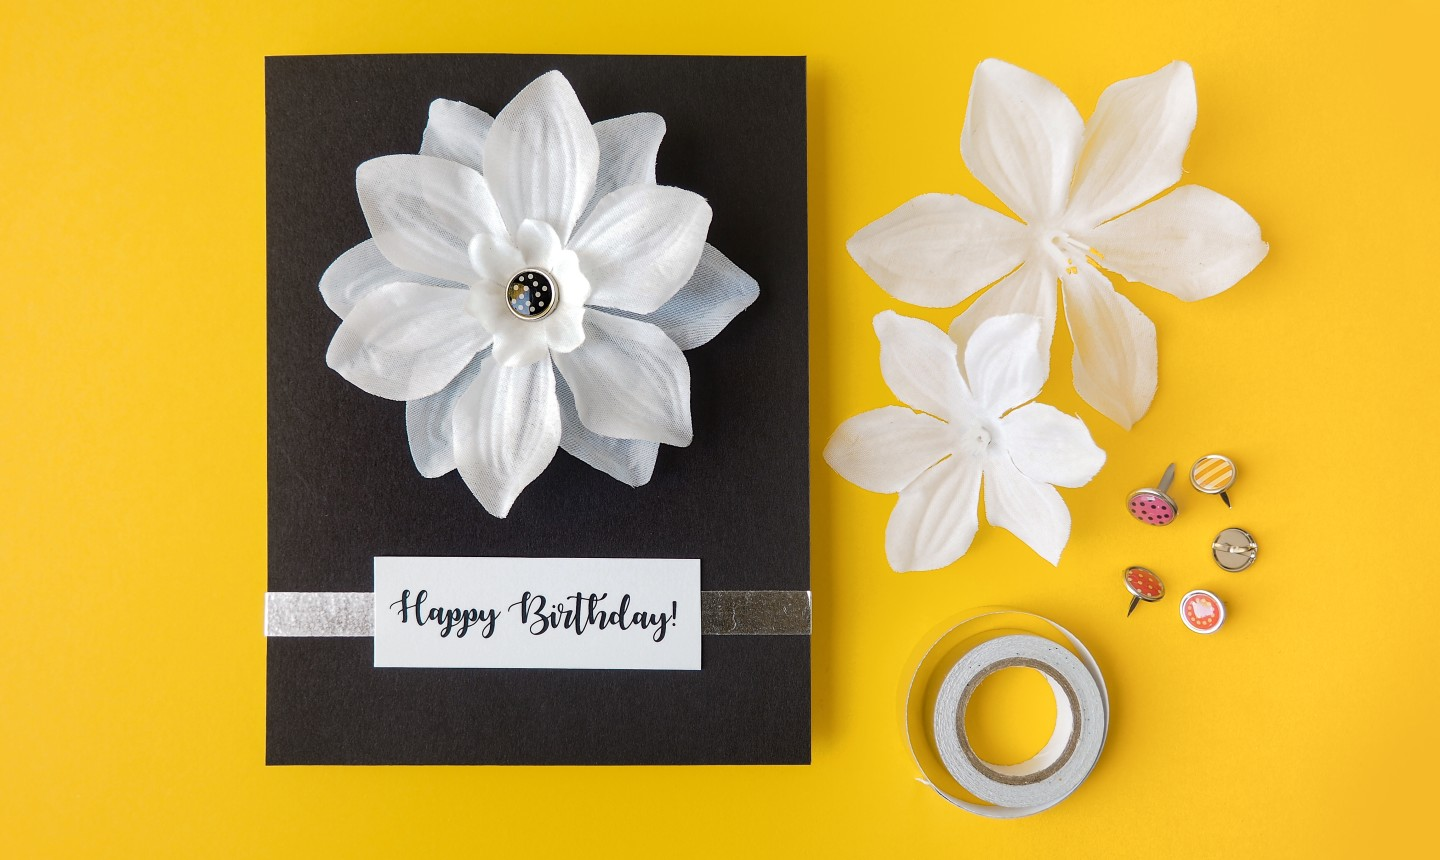 13 Easy Card-Making Ideas That Take 30 Minutes or Less | Craftsy